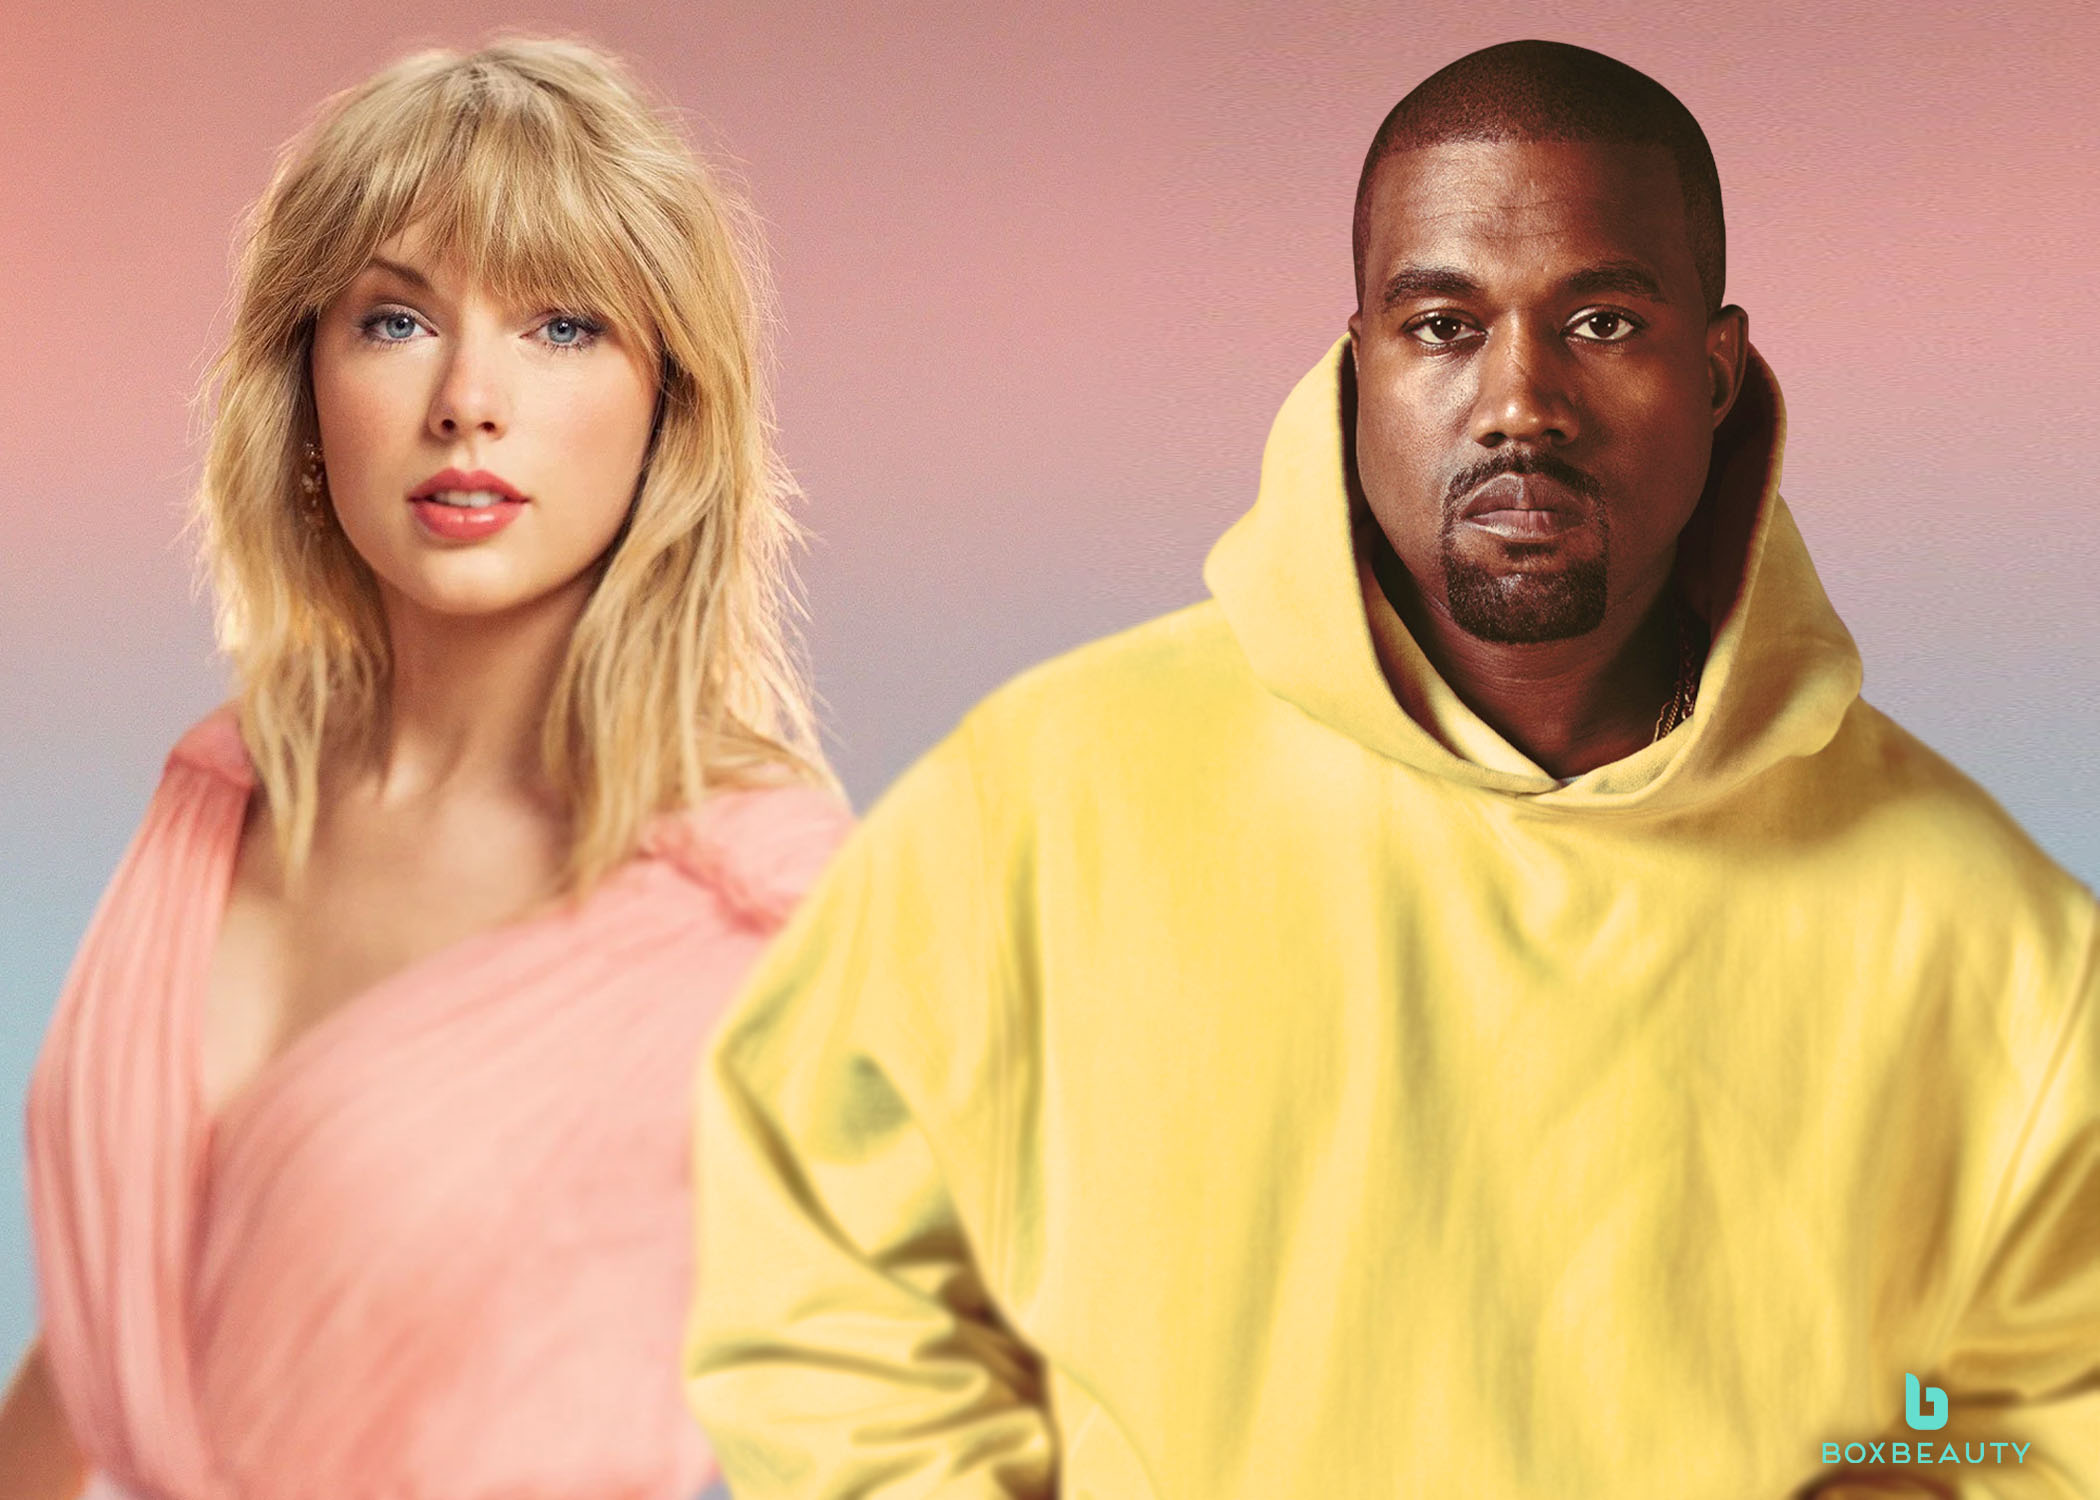 Will The Taylor Swift and Kanye West Feud Ever End?